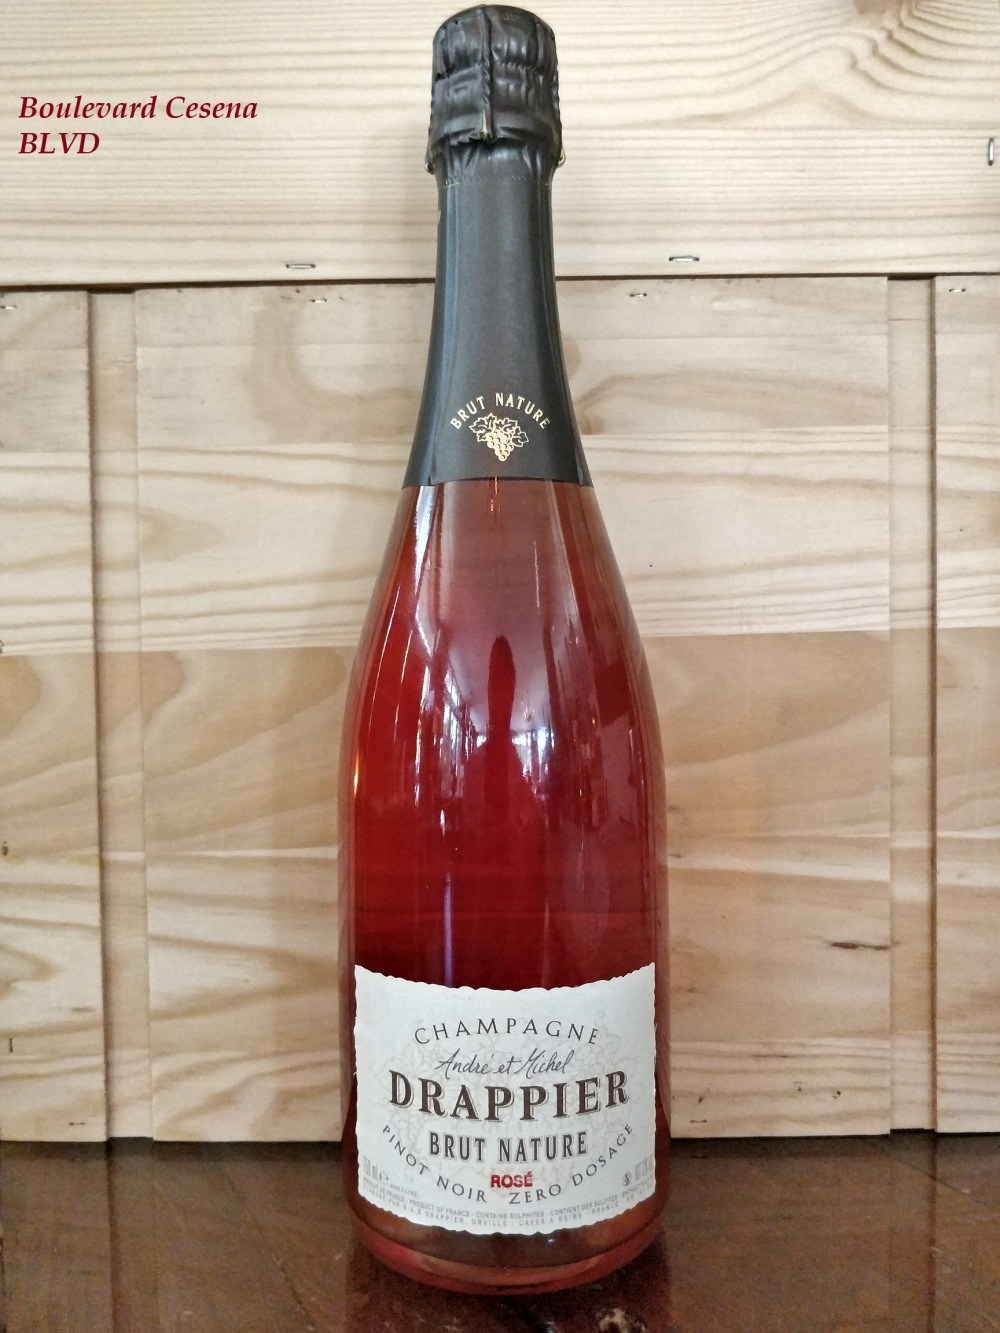 drappier brut nature ros